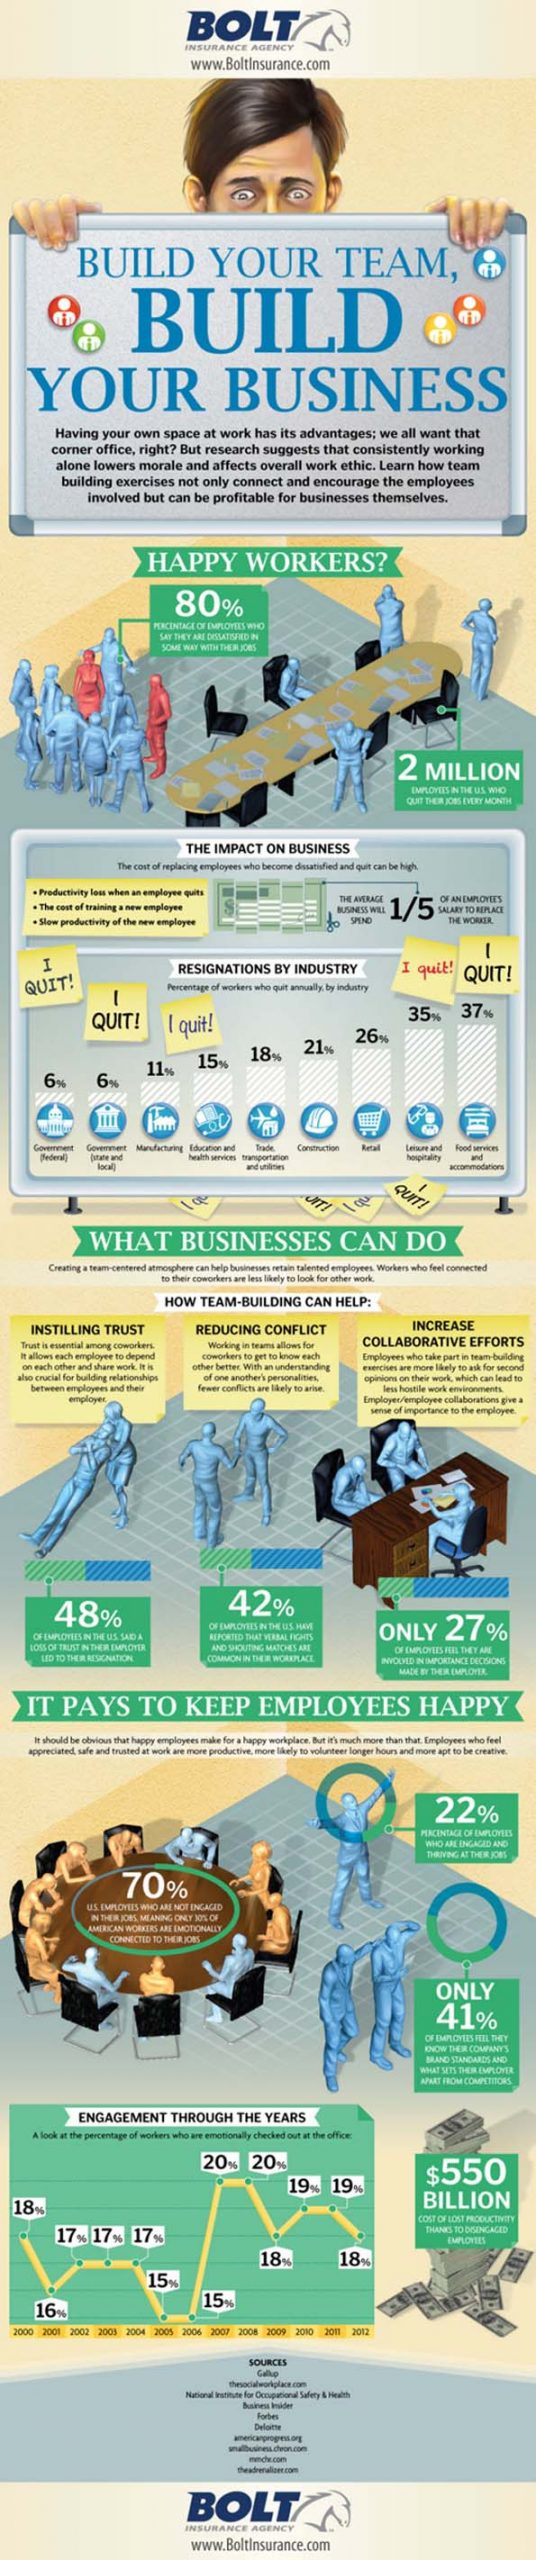 team building infographic from Bolt Insurance